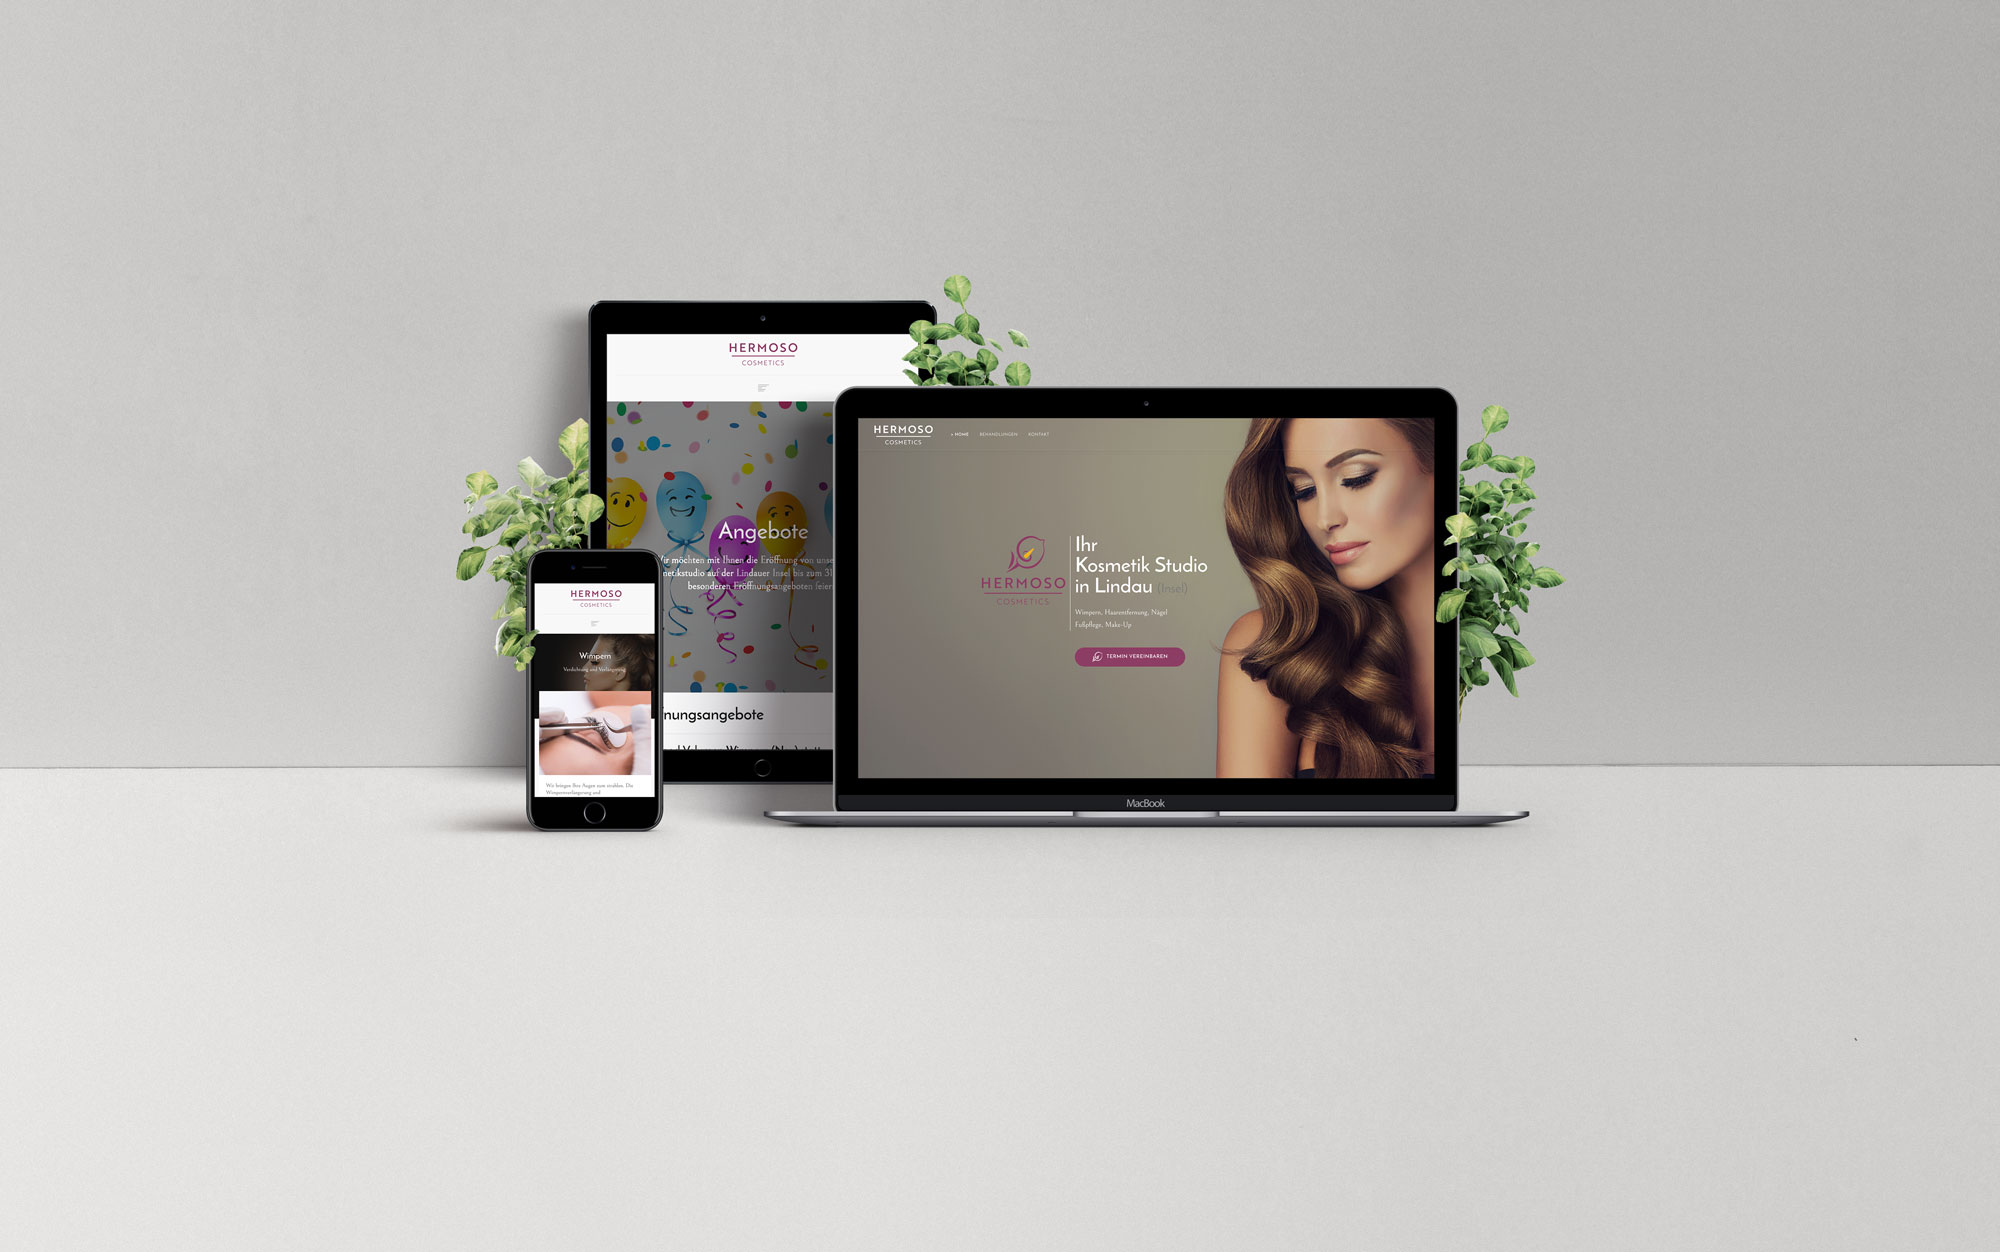 Webdesign Referenz, Hermoso Cosmetics, Lindau